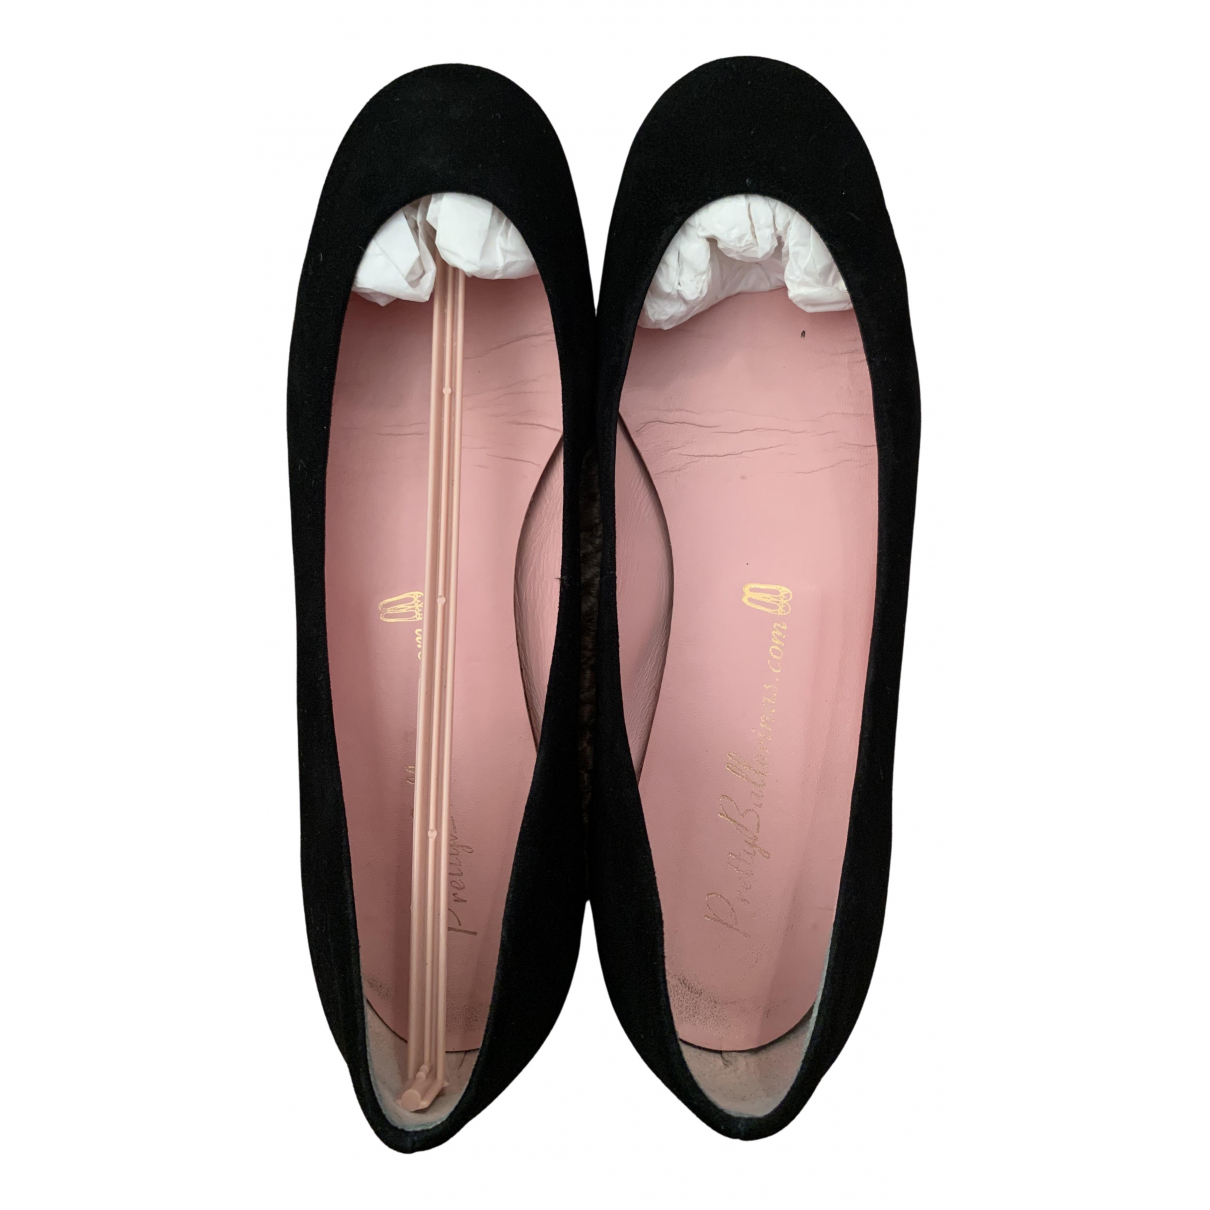 Pretty Ballerinas N Black Suede Ballet flats for Women 37.5 EU